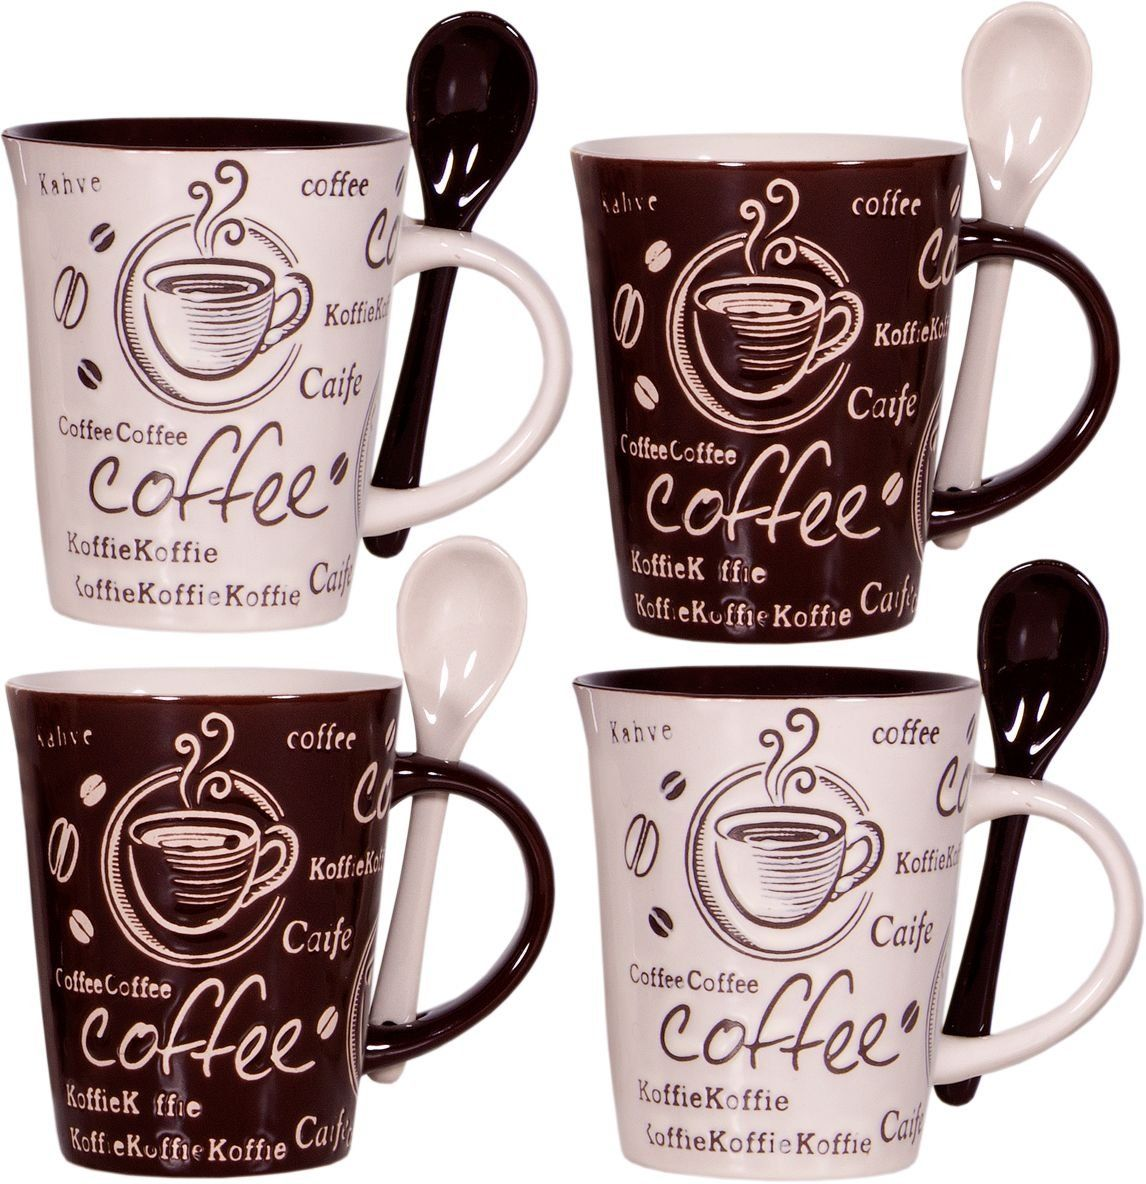 Cafe Style 10 Oz Coffee Mug and Spoon, (Set